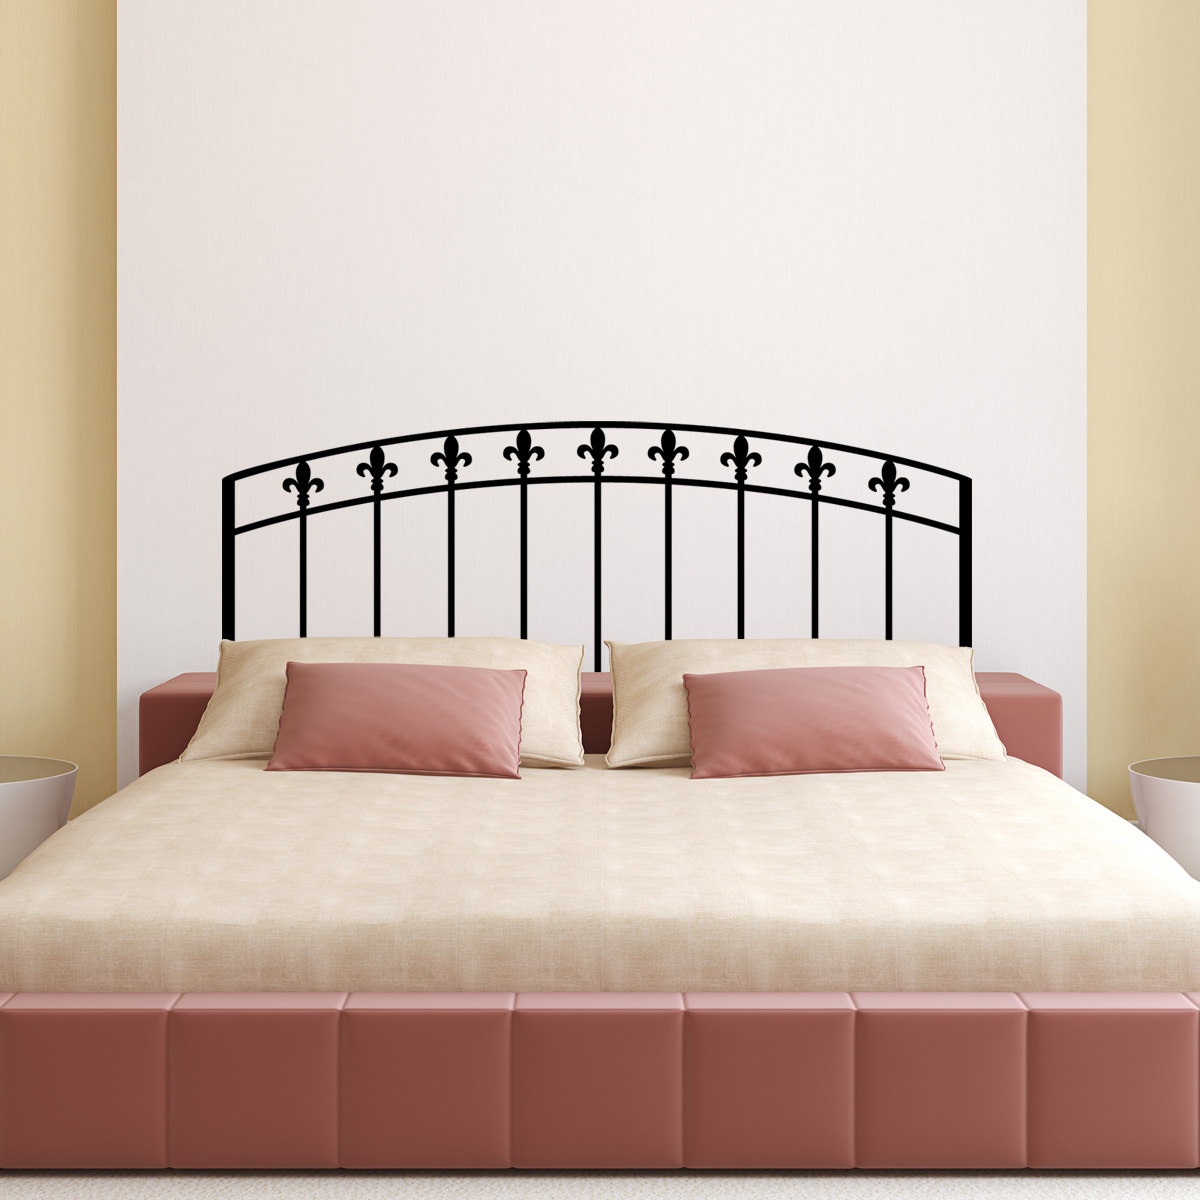 stickers muraux t tes de lit sticker mural classique simple lit double ambiance. Black Bedroom Furniture Sets. Home Design Ideas